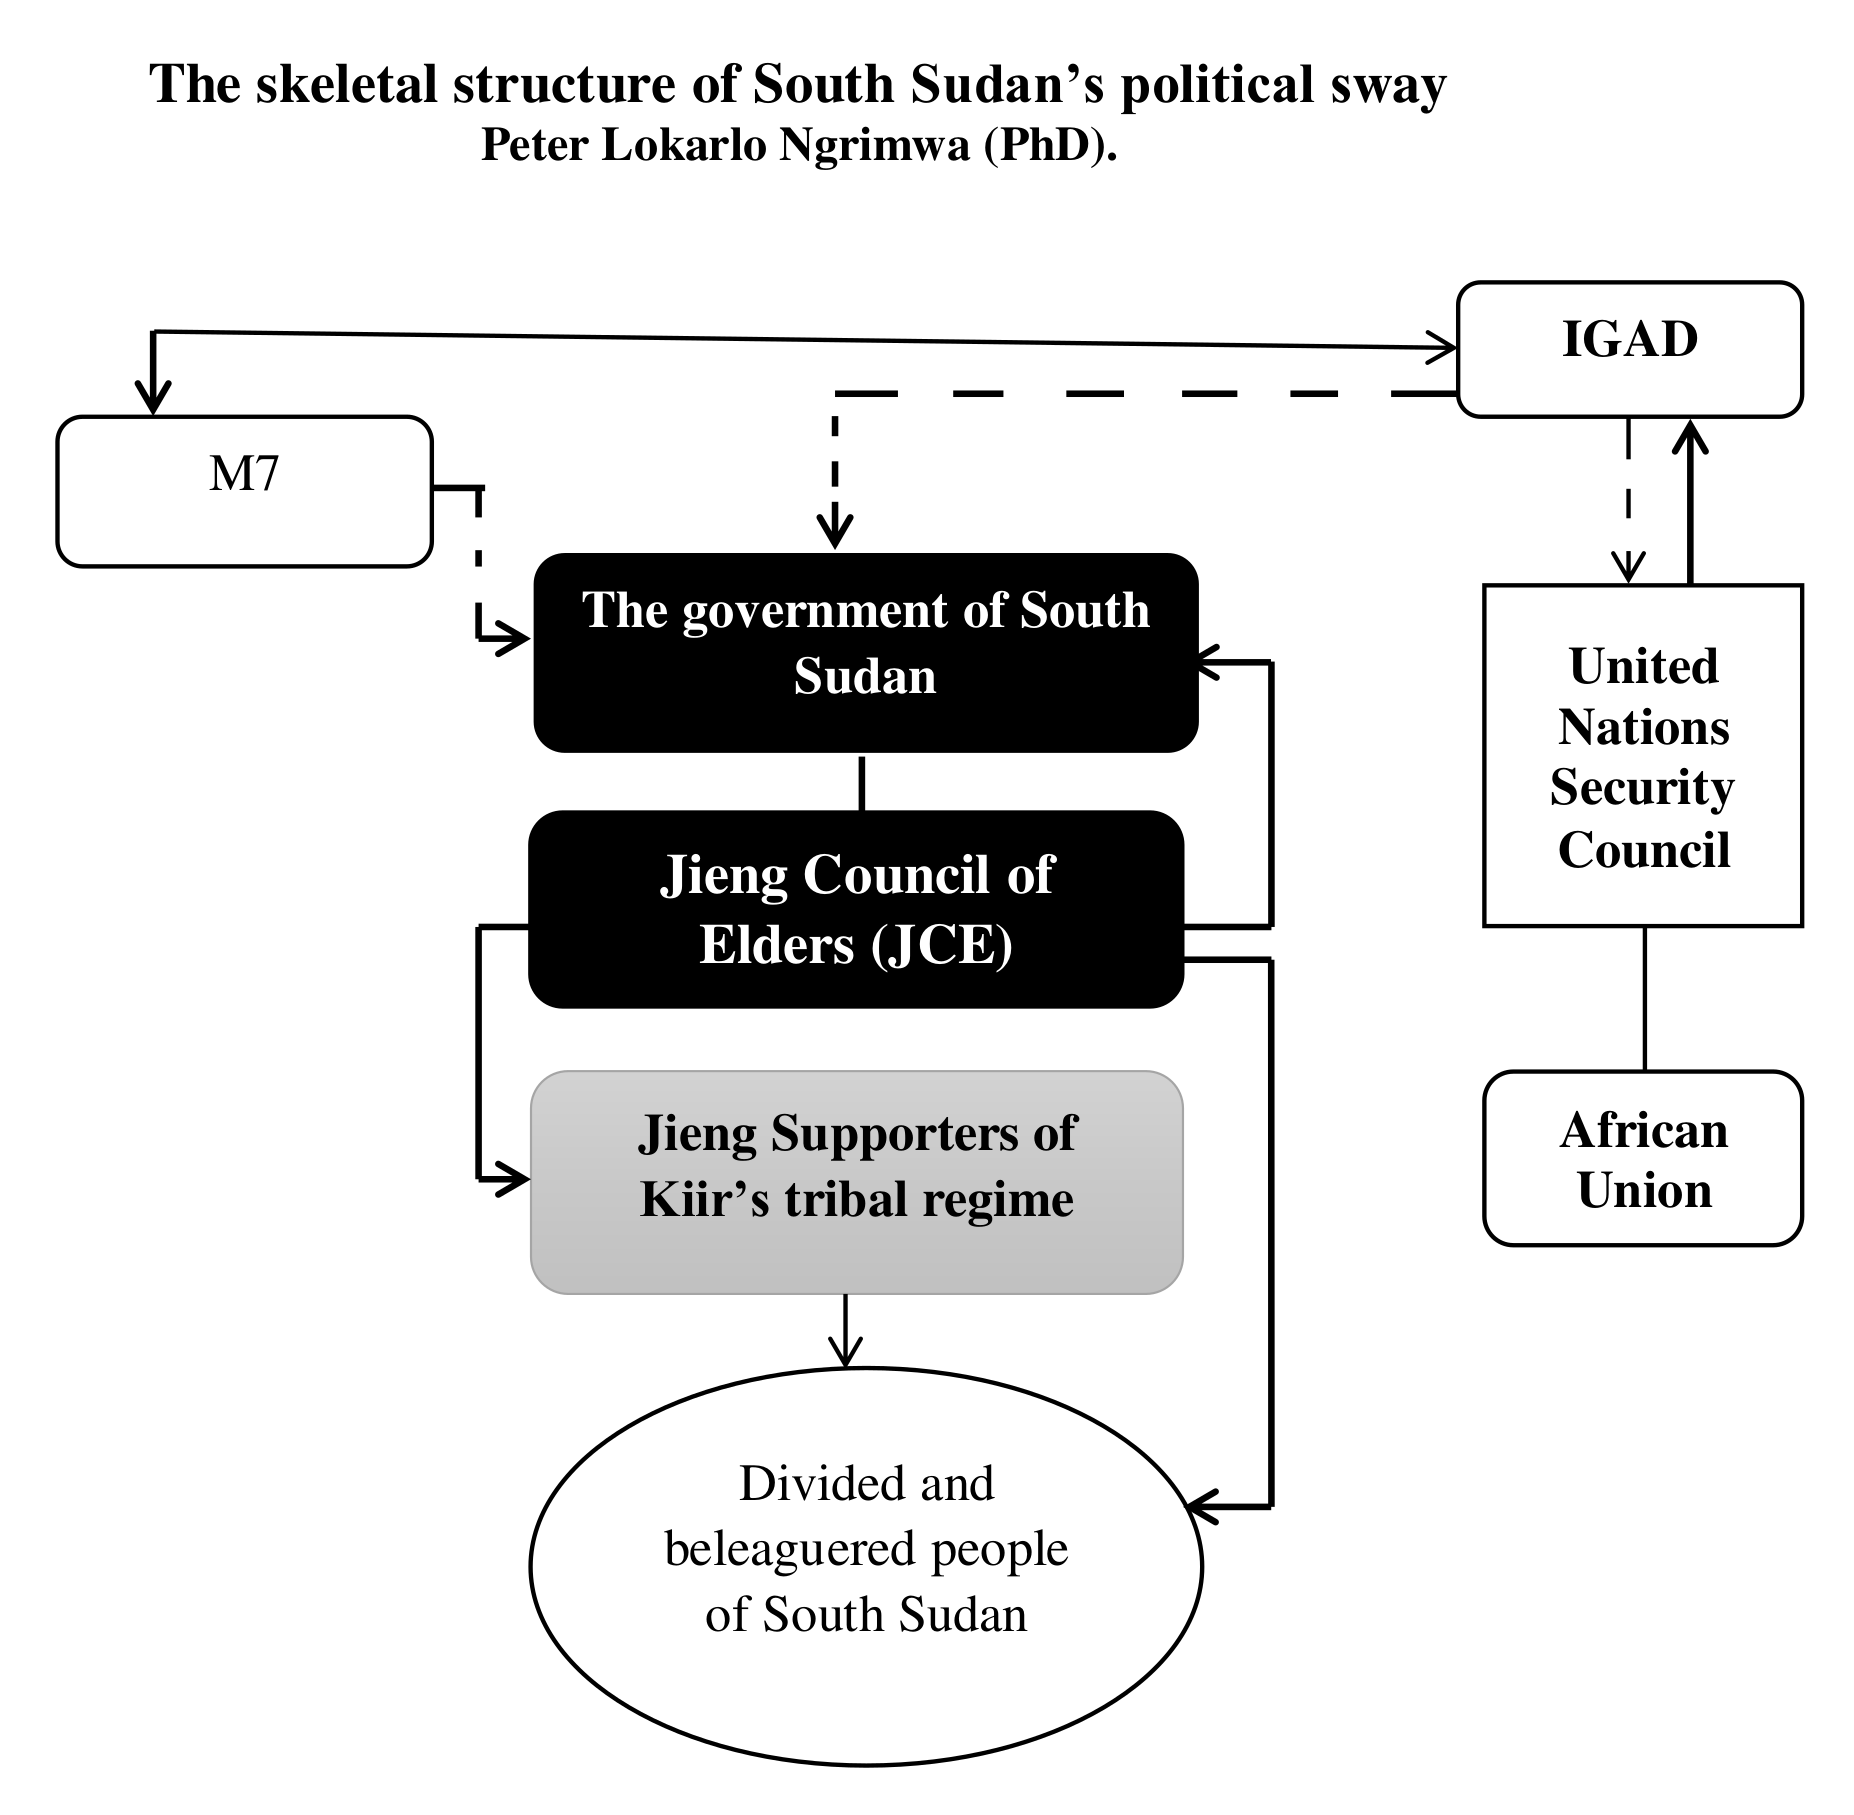 The skeletal structure of South Sudan's political sway Peter Lokarlo Ngrimwa (PhD)